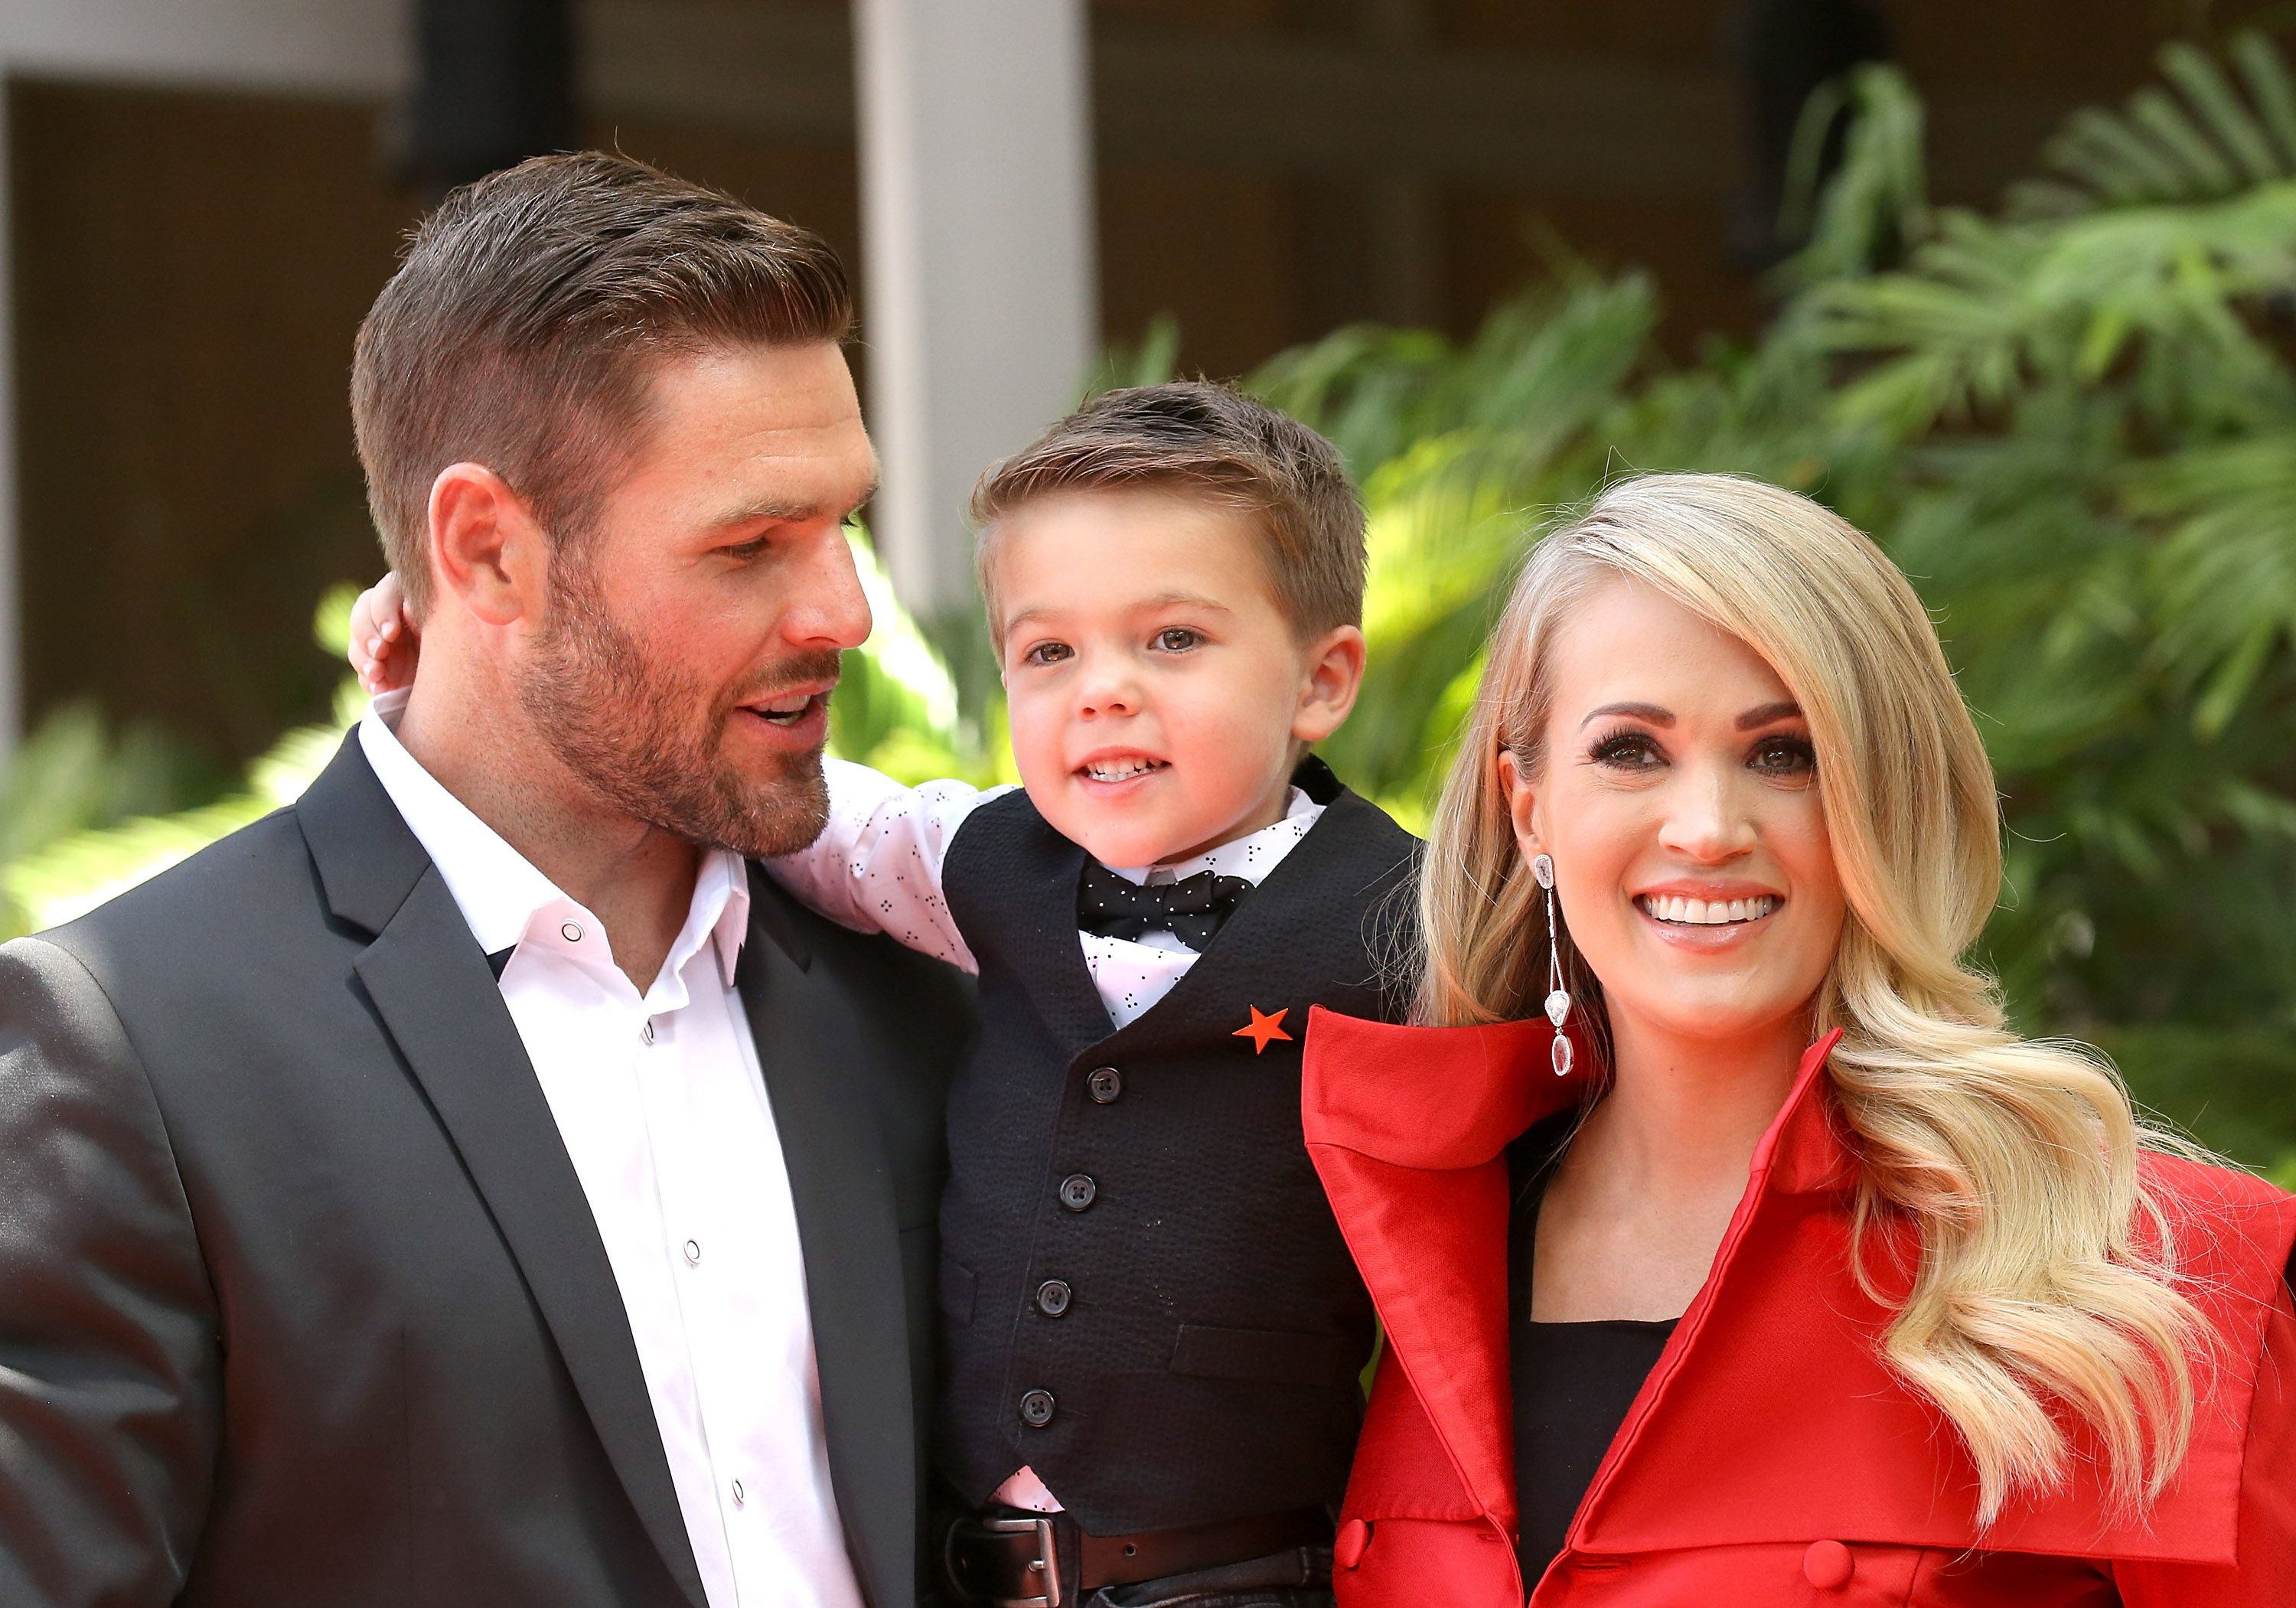 Carrie Underwood, Mike Fisher and their son, Isaiah Michael Fisher attend the ceremony honoring Carrie Underwood with a Star on The Hollywood Walk of Fame held on September 20, 2018 | Photo: Getty Images